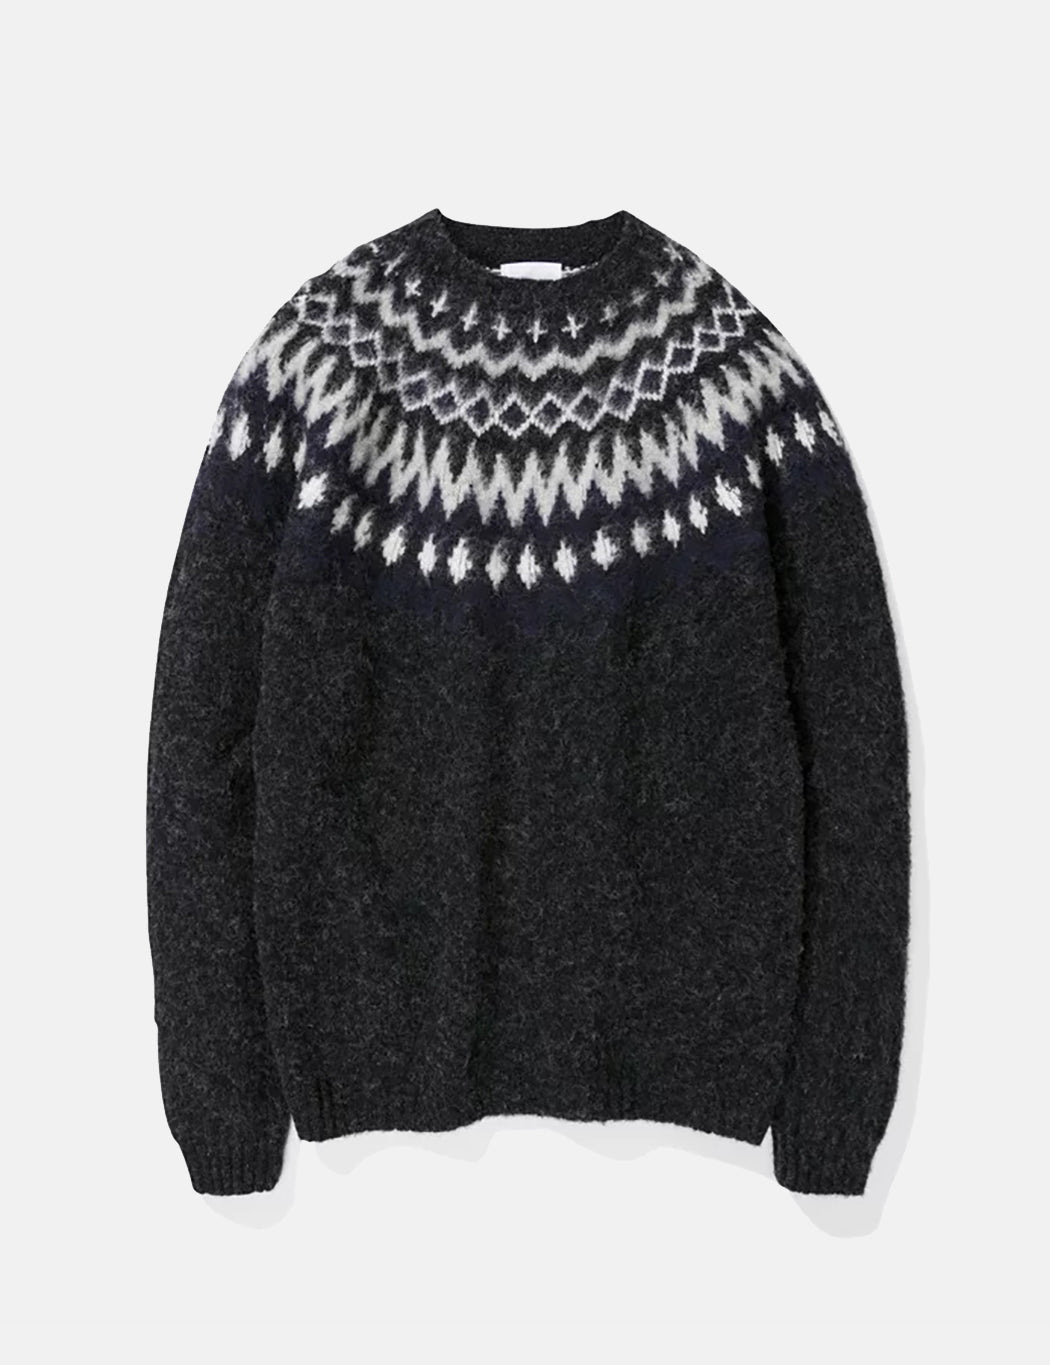 Norse Projects Birnir Fairisle Knitted Sweater - Charcoal Melange